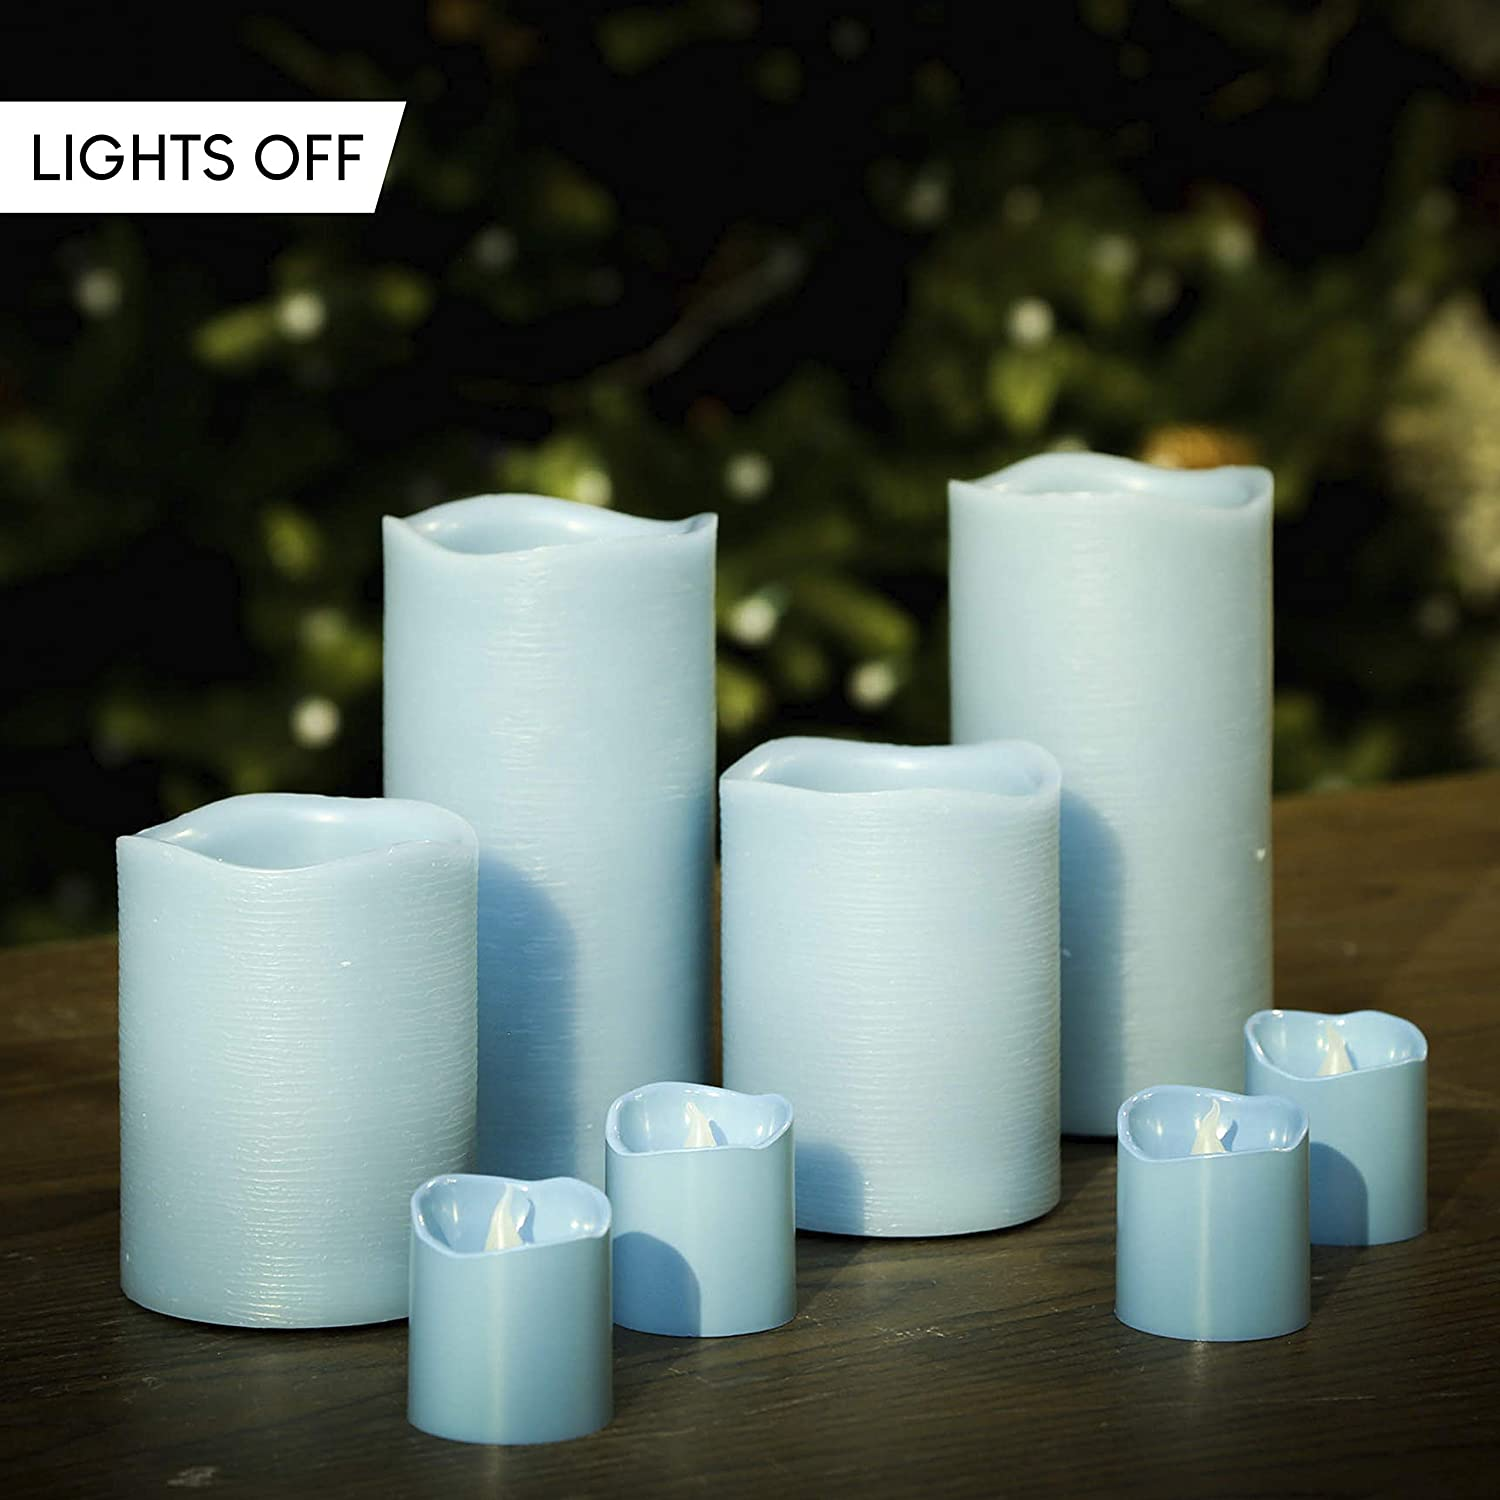 Gold Trim Furora LIGHTING LED Flameless Candles with Remote Control Real Wax Battery Operated Pillars and Votives LED Candles with Flickering Flame and Timer Featured Set of 8